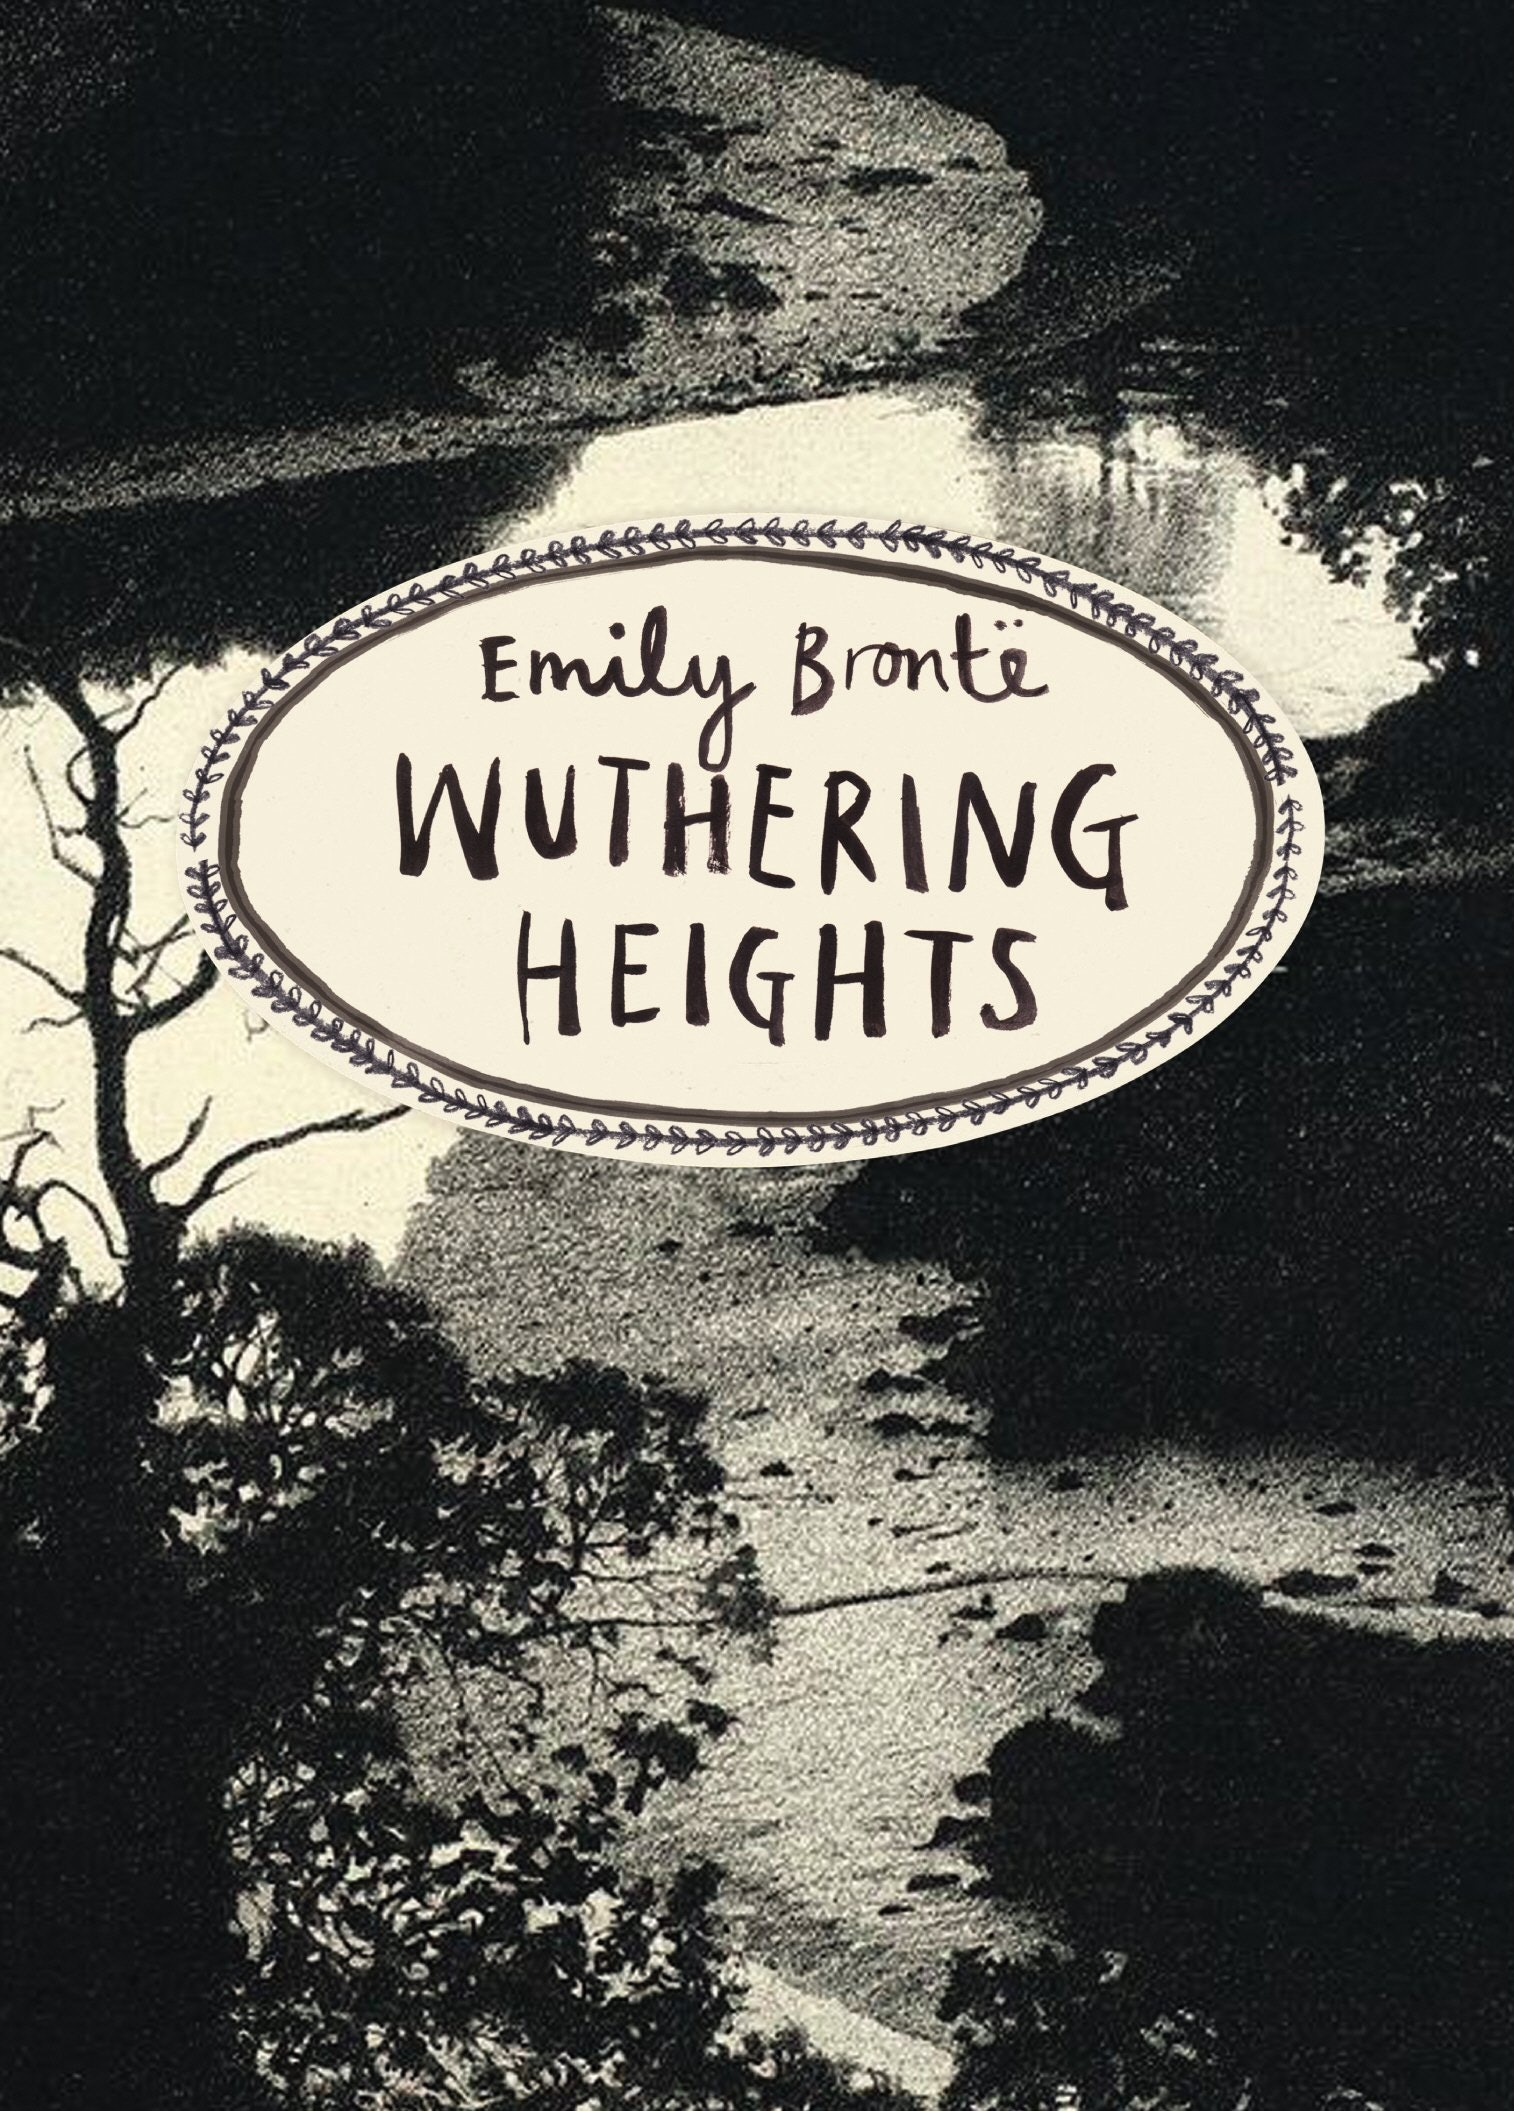 Image result for wuthering heights emily bronte